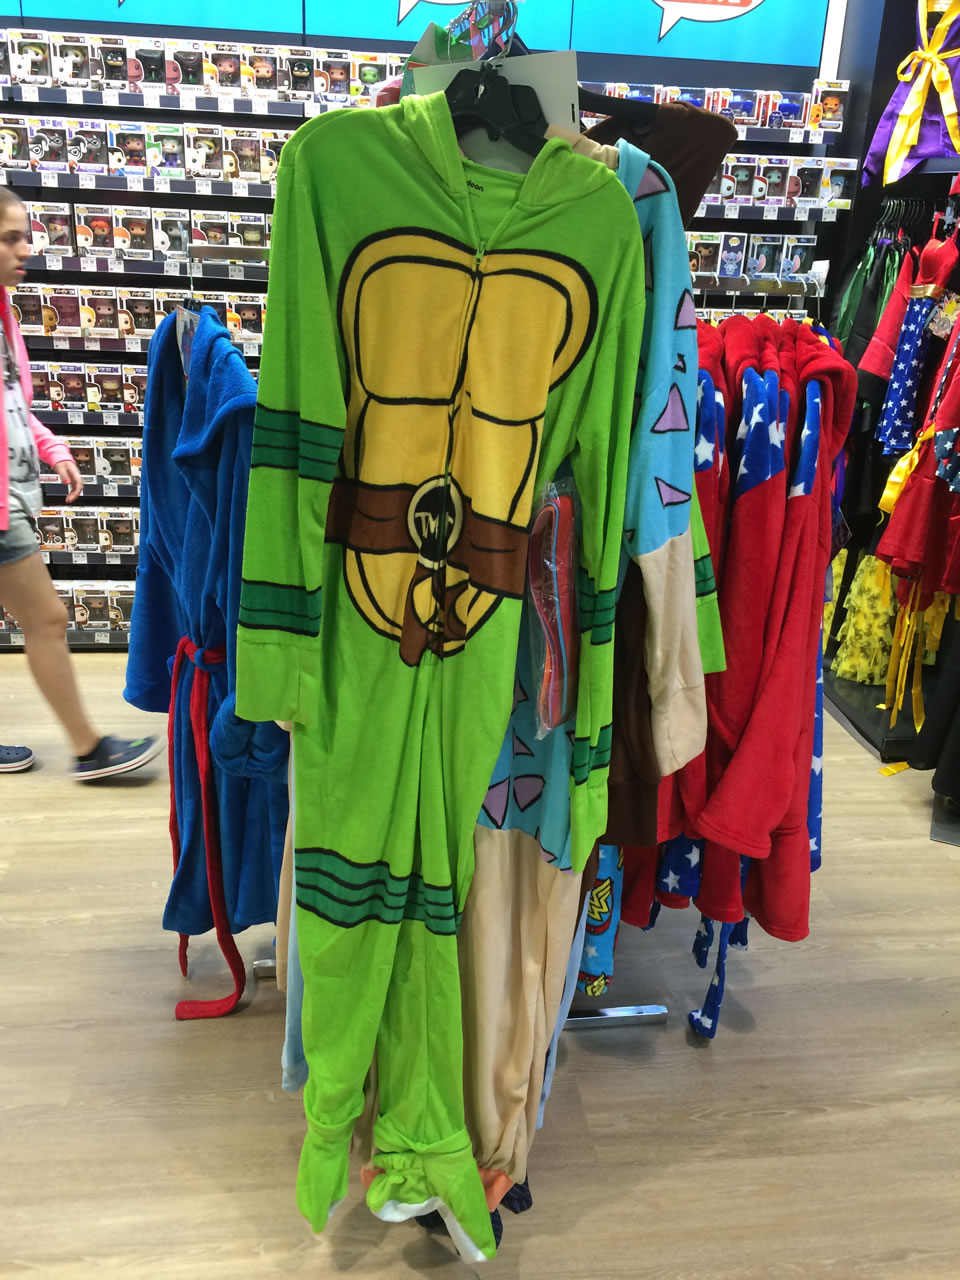 35 thinkgeek store - tmnt footy pajamas